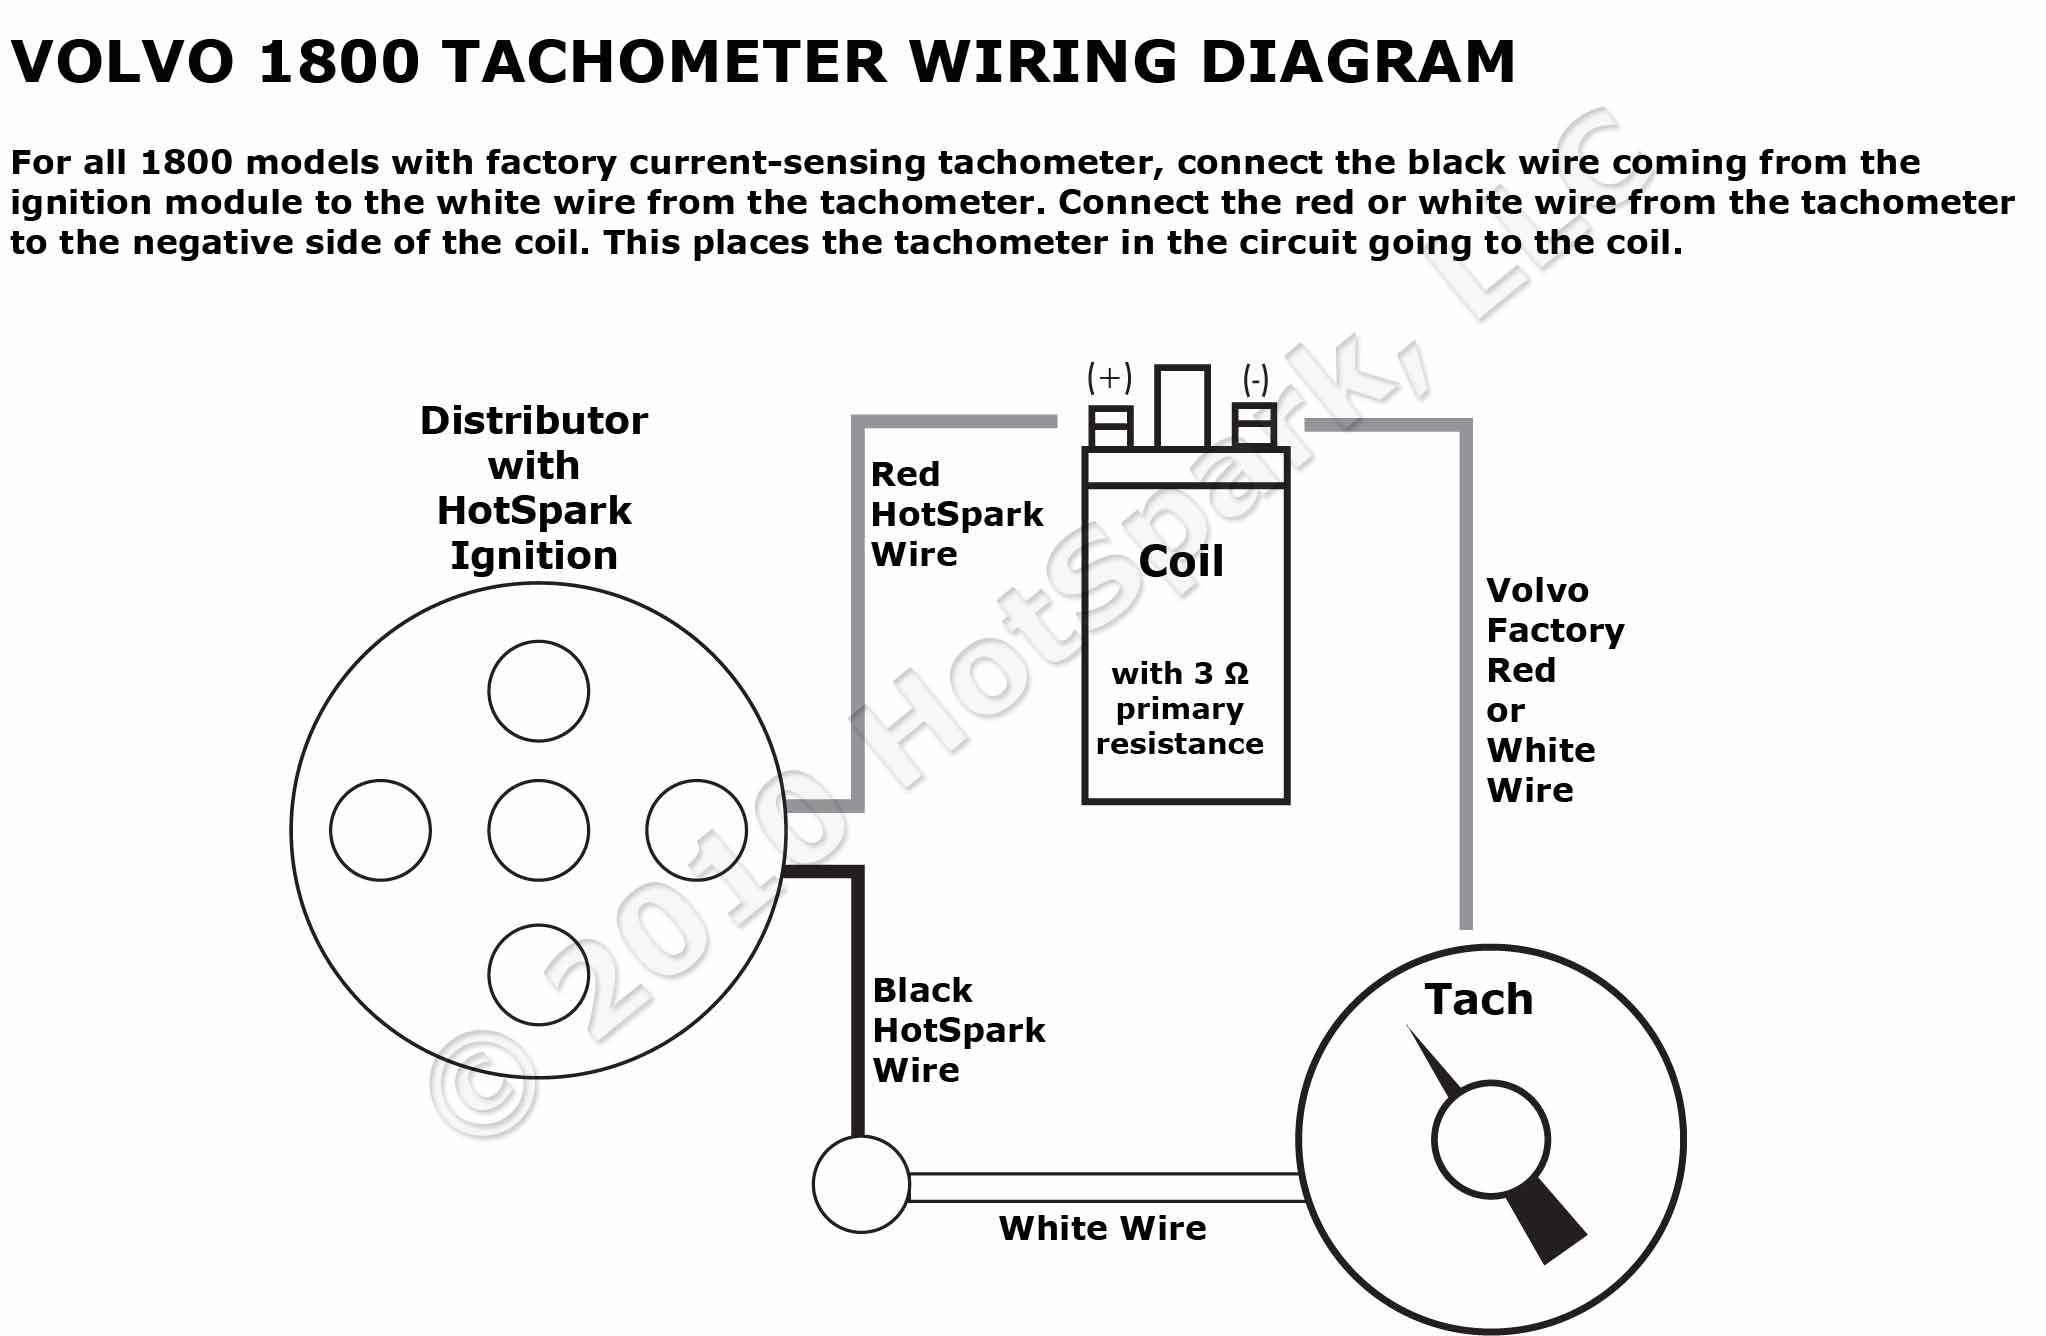 Volvo 1800 Tachometer and Hot Spark Wiring Diagram tach wiring diagram autometer tach wiring diagram \u2022 wiring aftermarket tachometer wiring diagram at virtualis.co